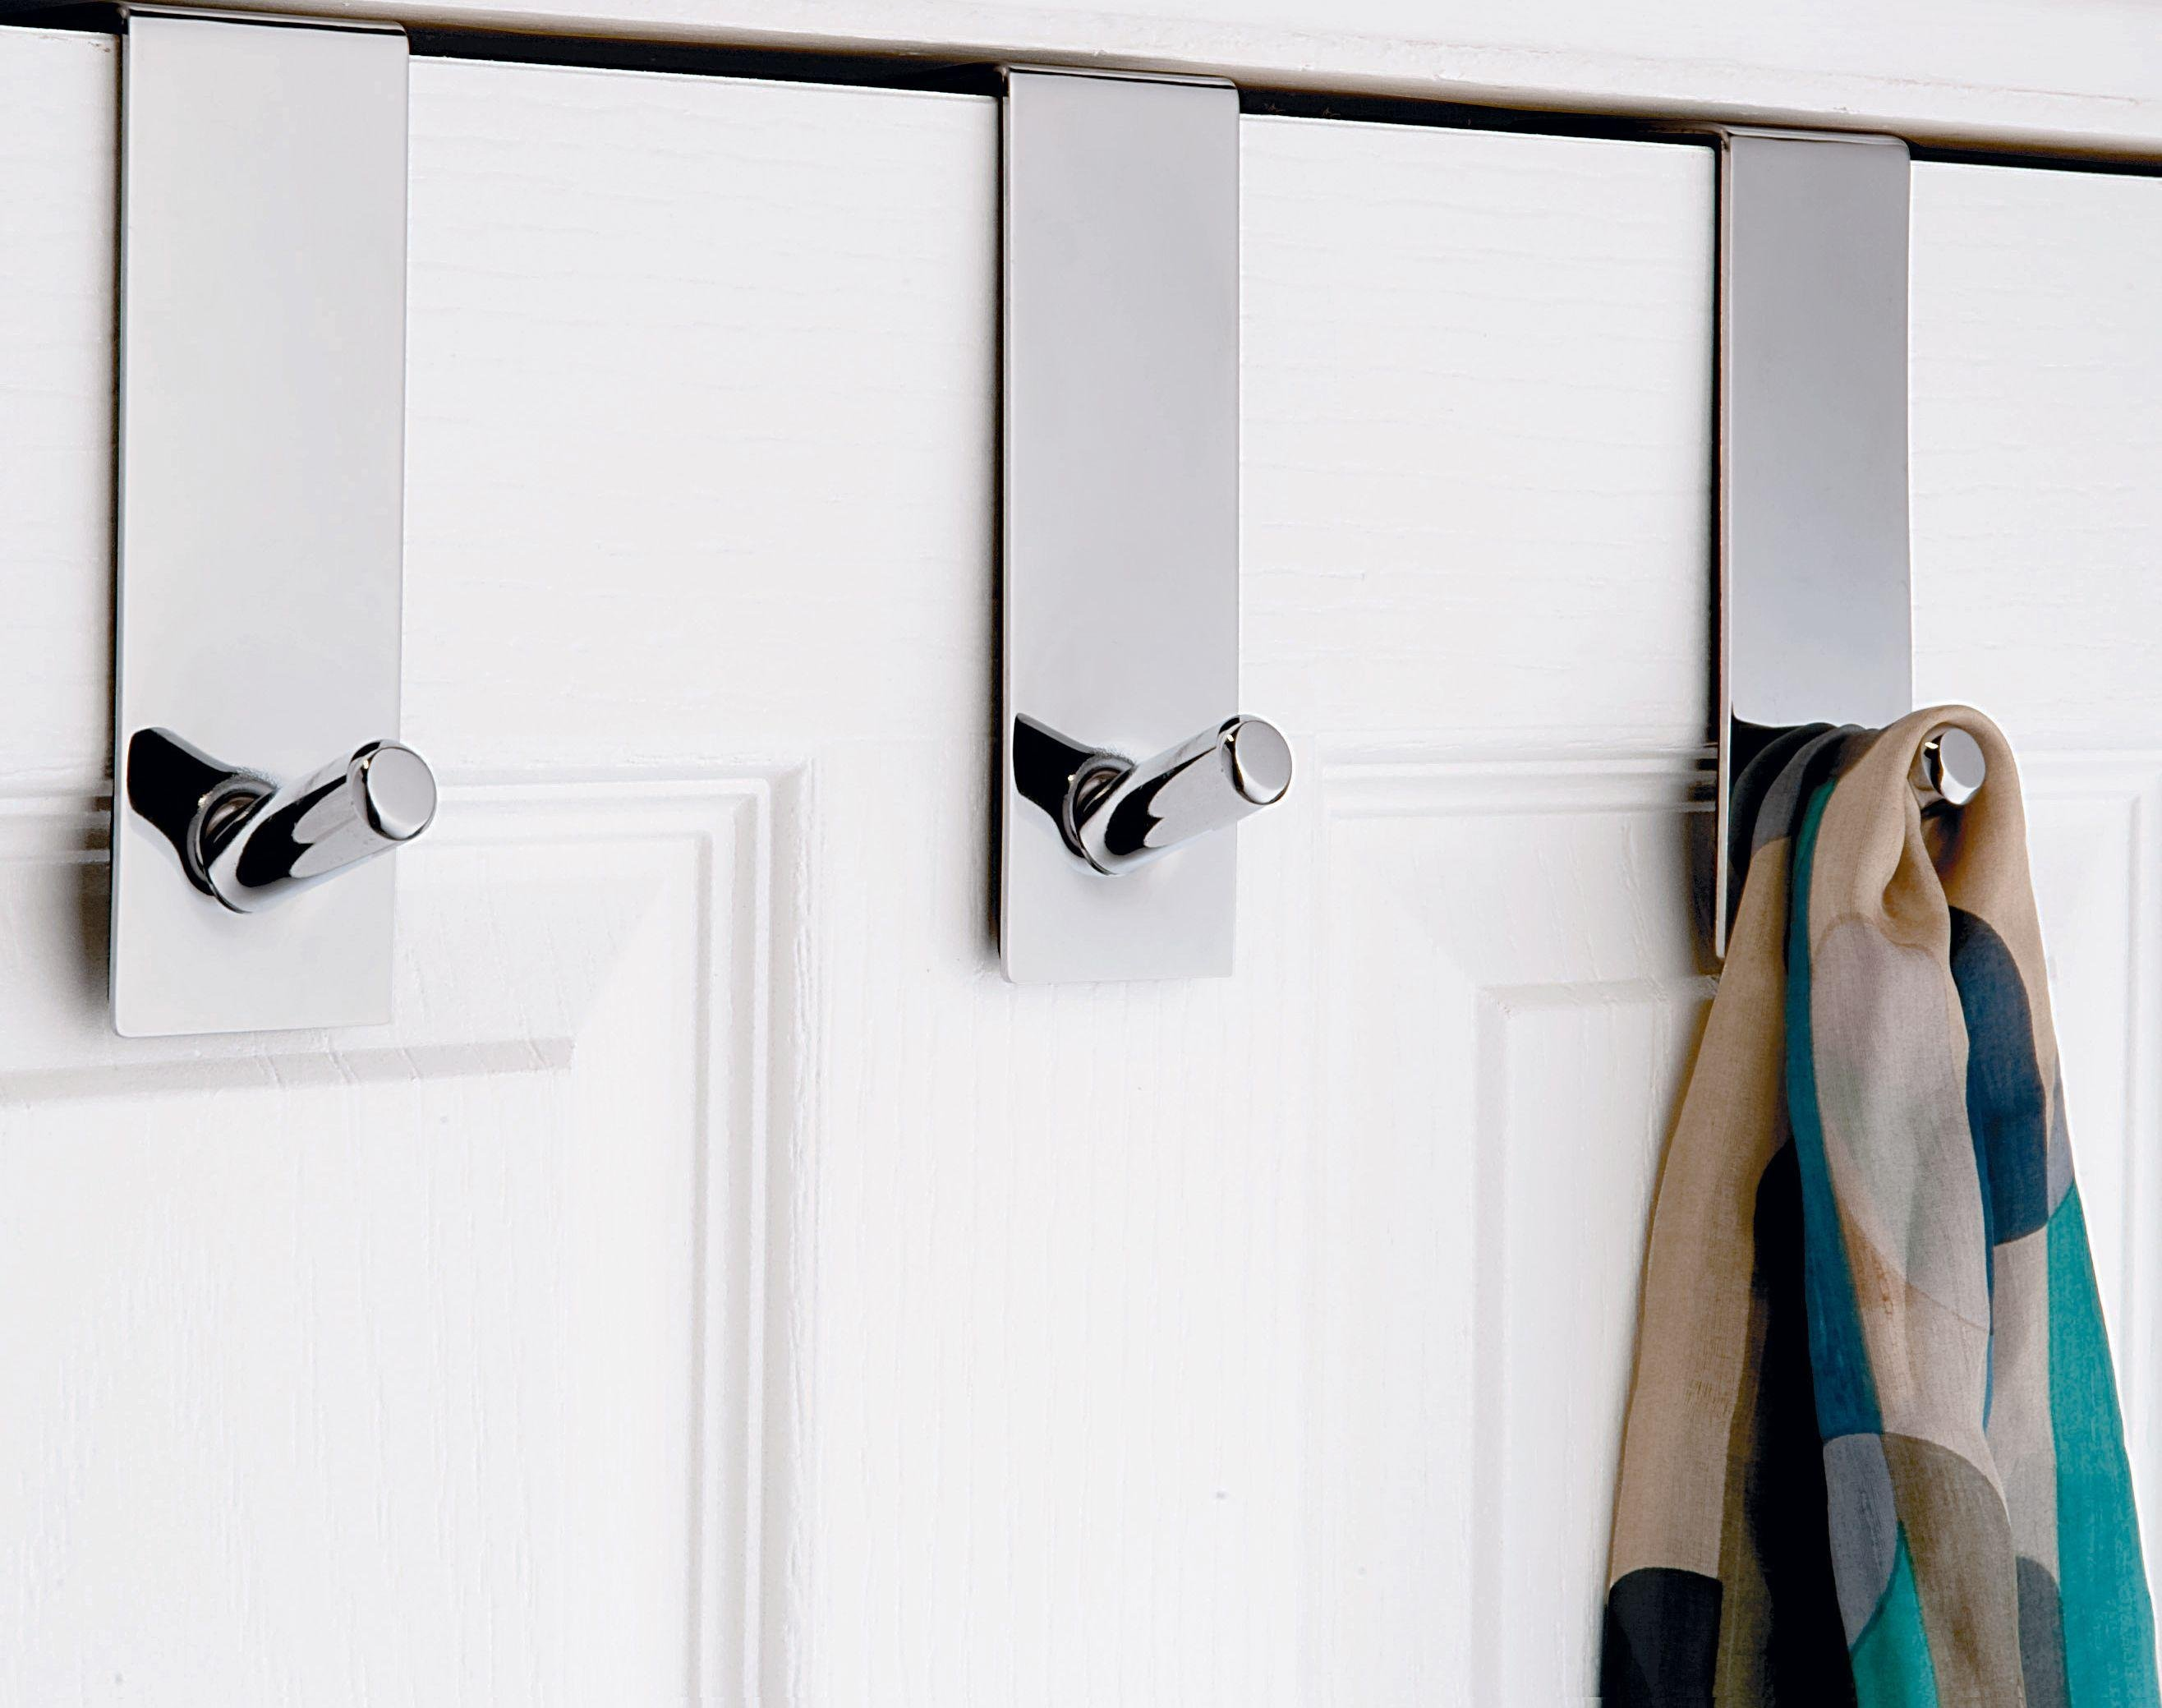 HOME Set of 3 Chunky Over Door Coat Hooks - Chrome875/5333 & Buy HOME Set of 3 Chunky Over Door Coat Hooks - Chrome at Argos.co ... Pezcame.Com